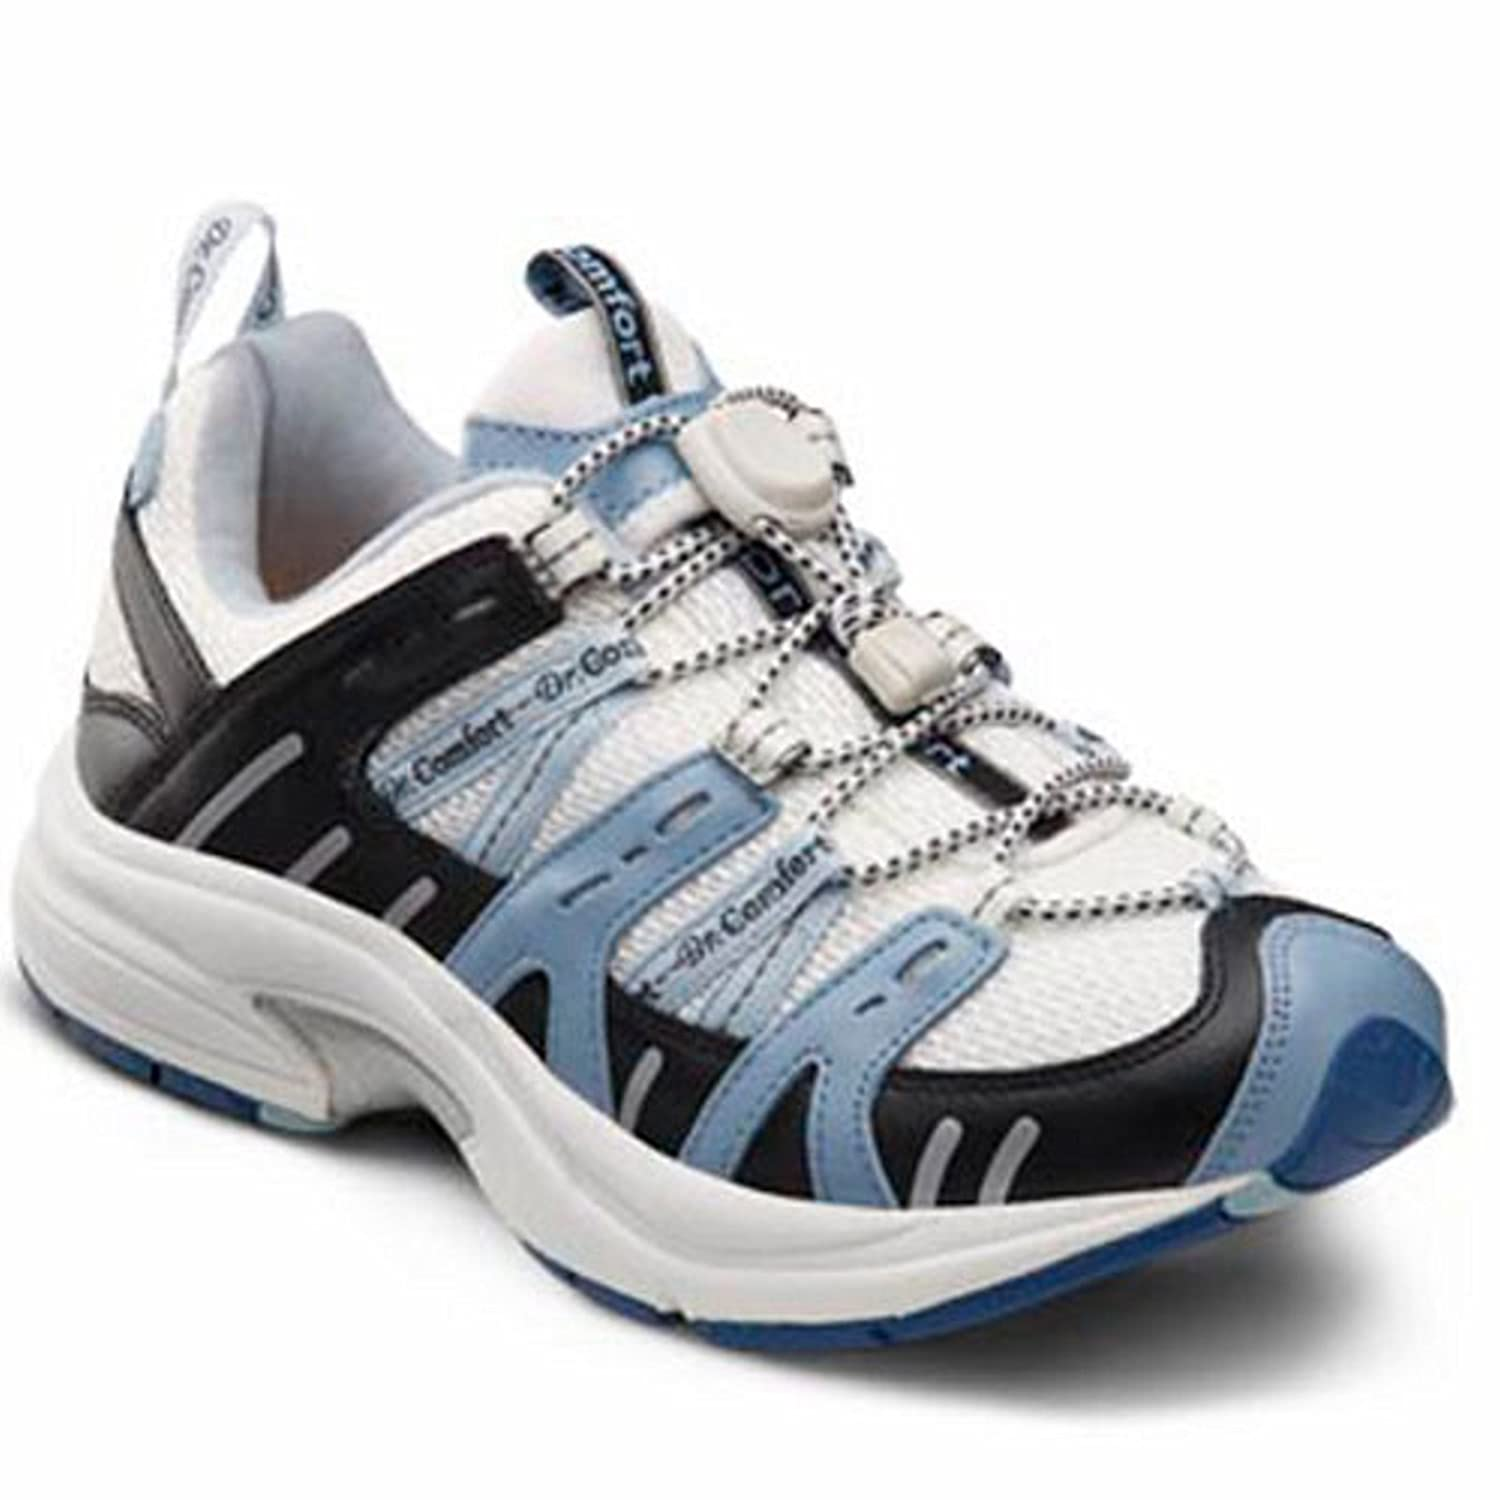 for sneakers walking comforter all buy comfortable best to day shoes standing in the